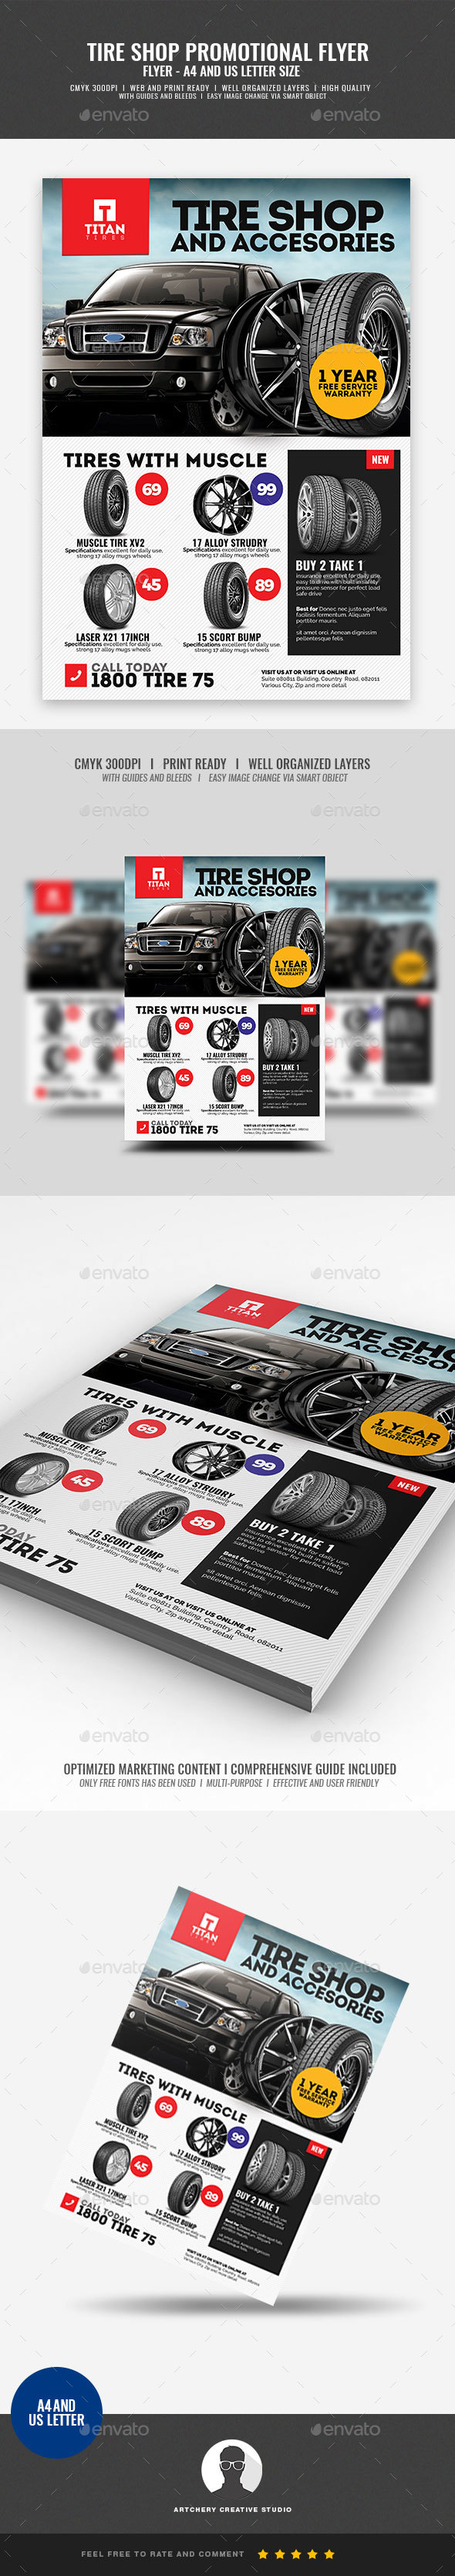 Tire Store Promotional Flyer - Corporate Flyers